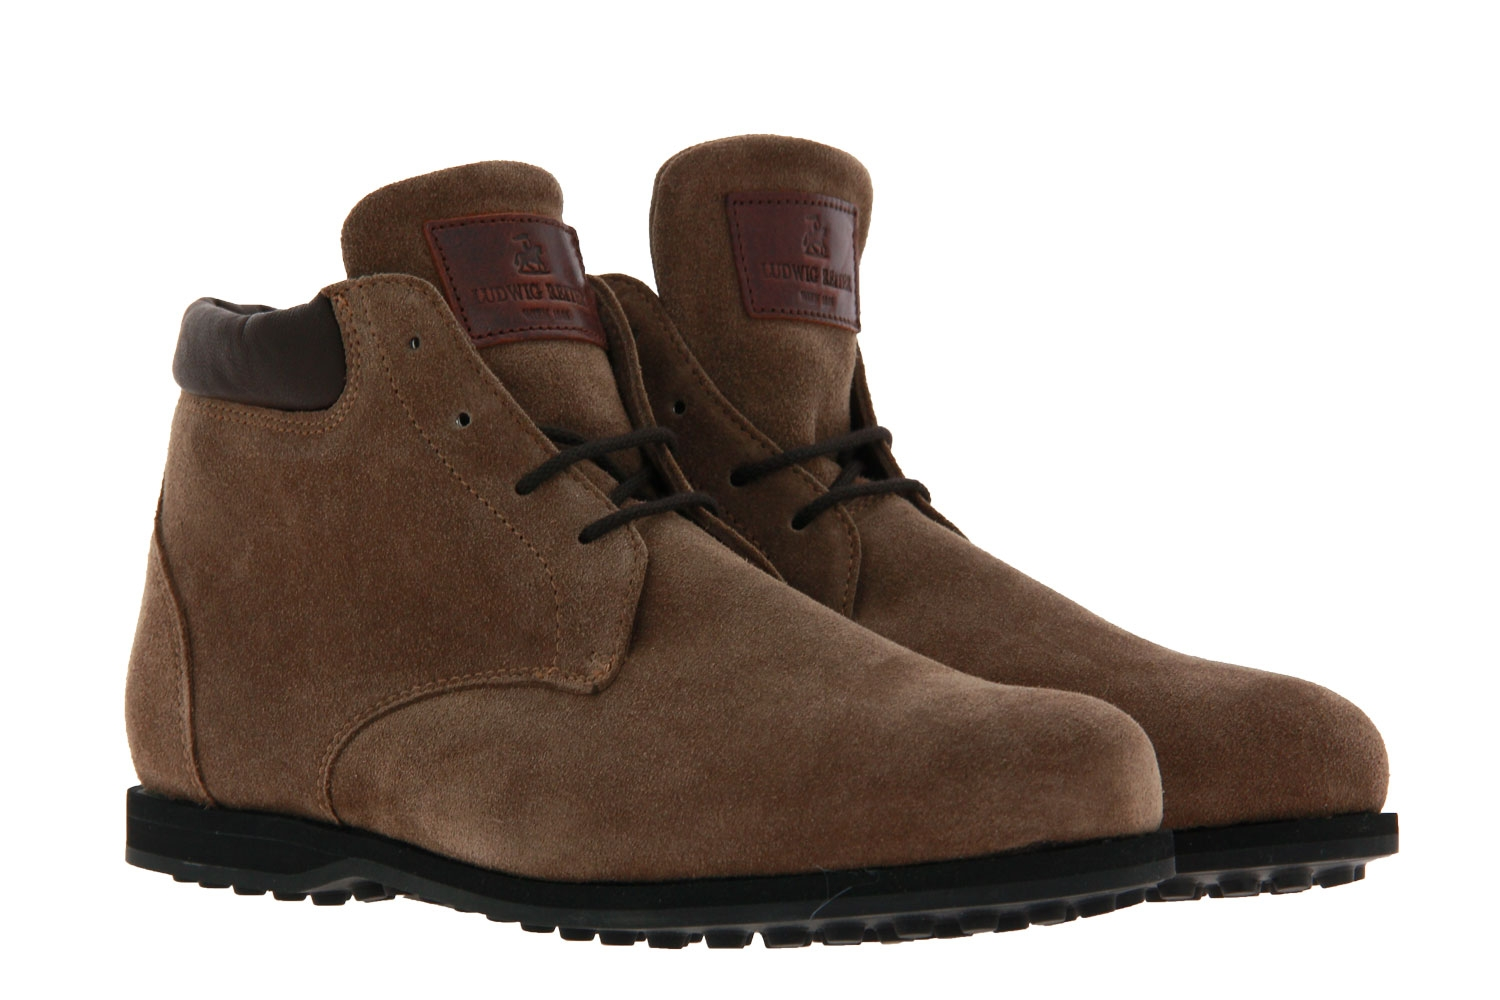 Ludwig Reiter lace-up boots lined GRINZINGER VELOUR TABAC